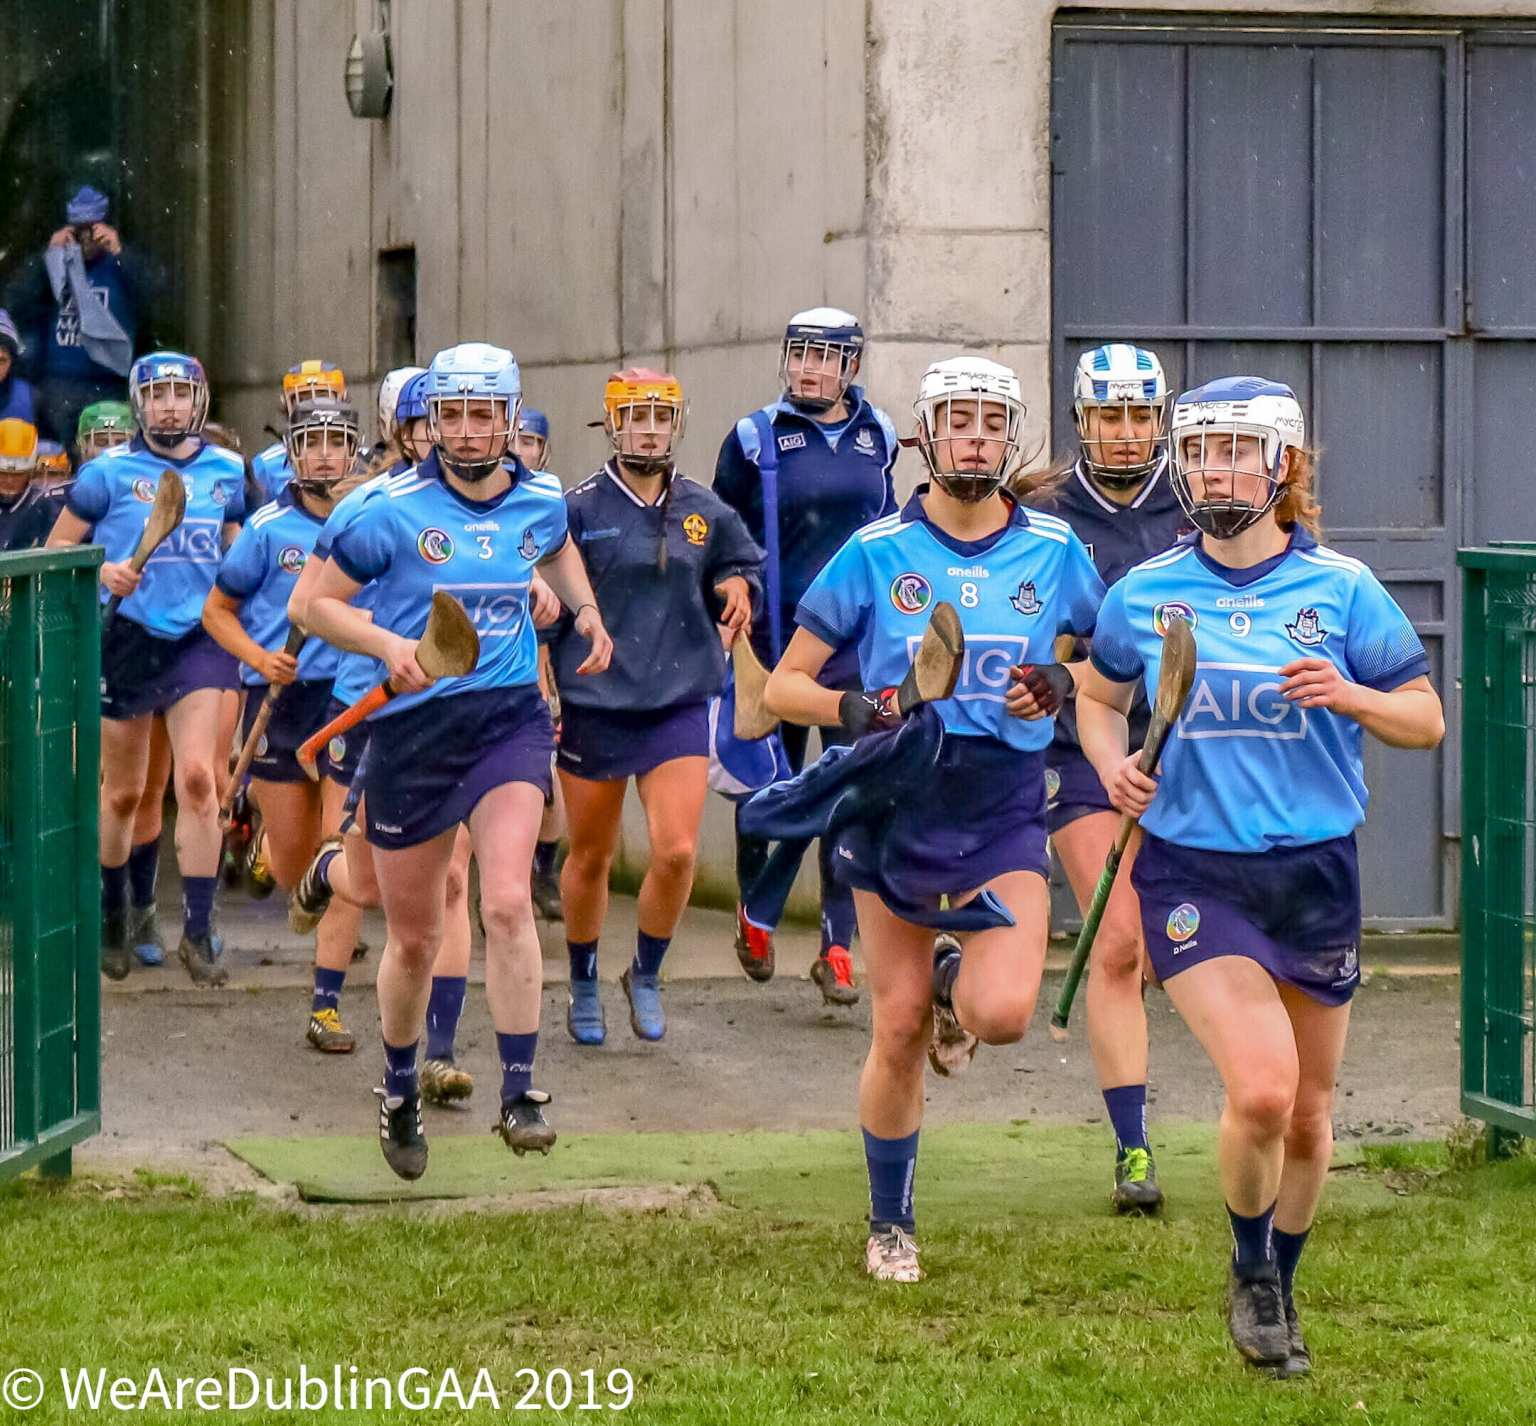 Dublin Camogie Players making their way onto the pitch for the Senior Camogie All Ireland Championship